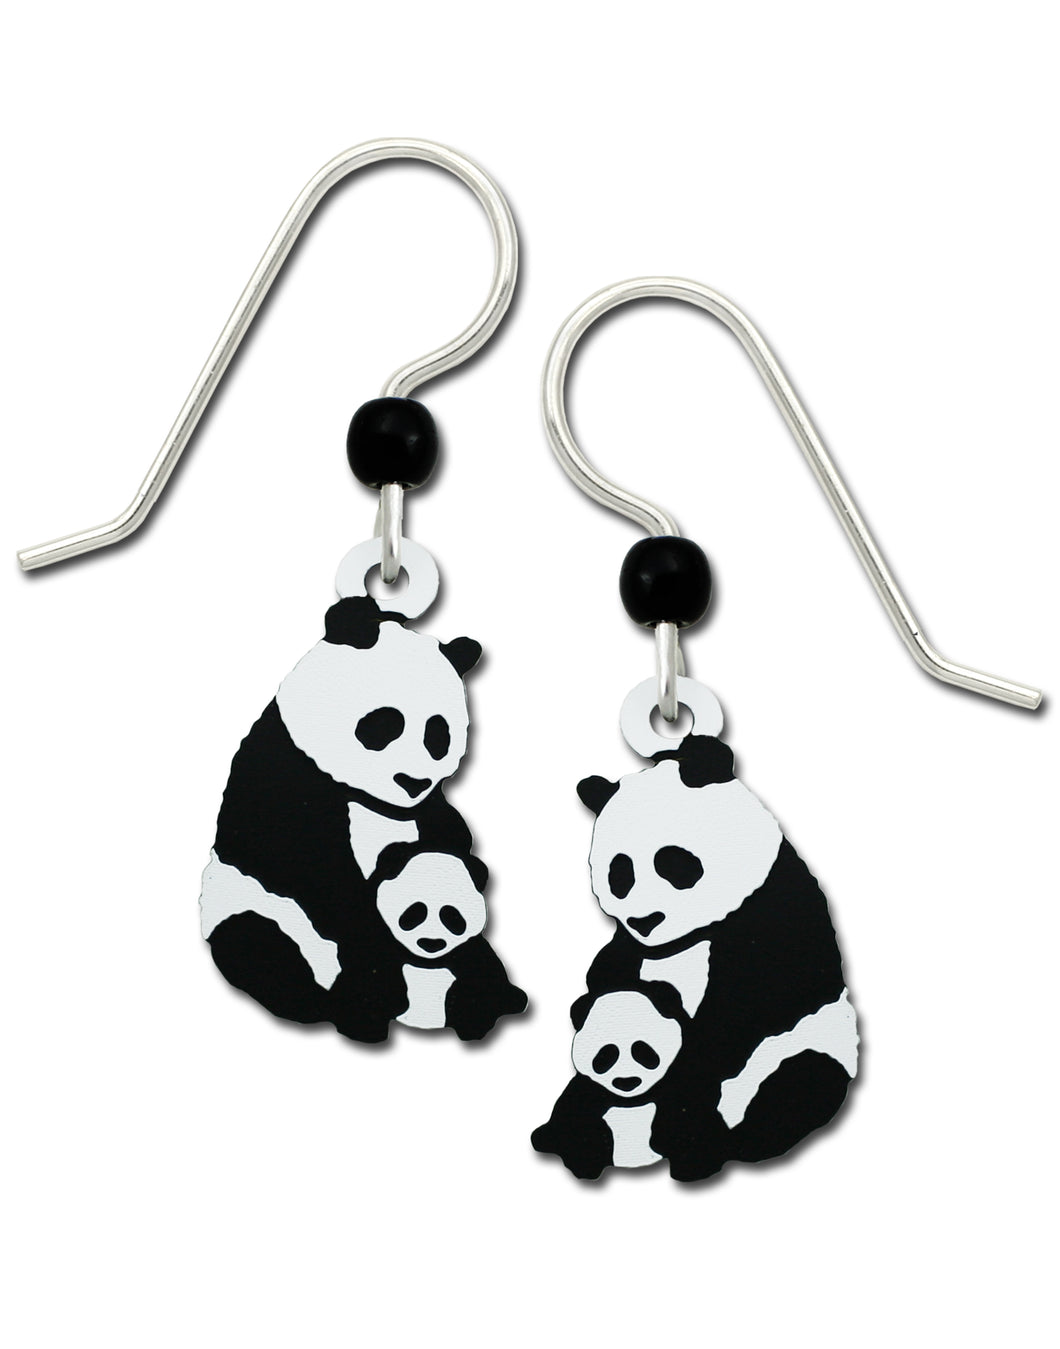 Sienna Sky Mother and Baby Panda Bear Hand Painted Earrings